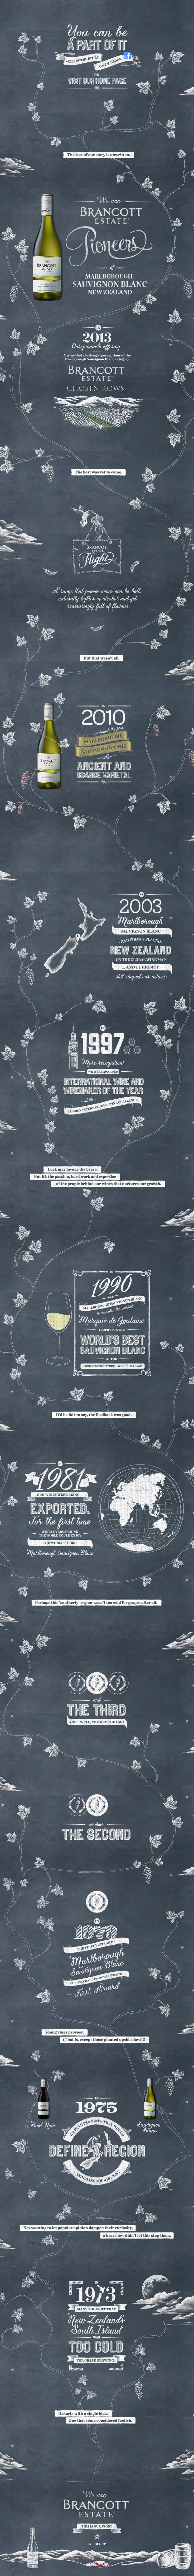 Brancott Estate. 40 years of wine-making history in a one page (upside-down) scroller. #webdesign #design